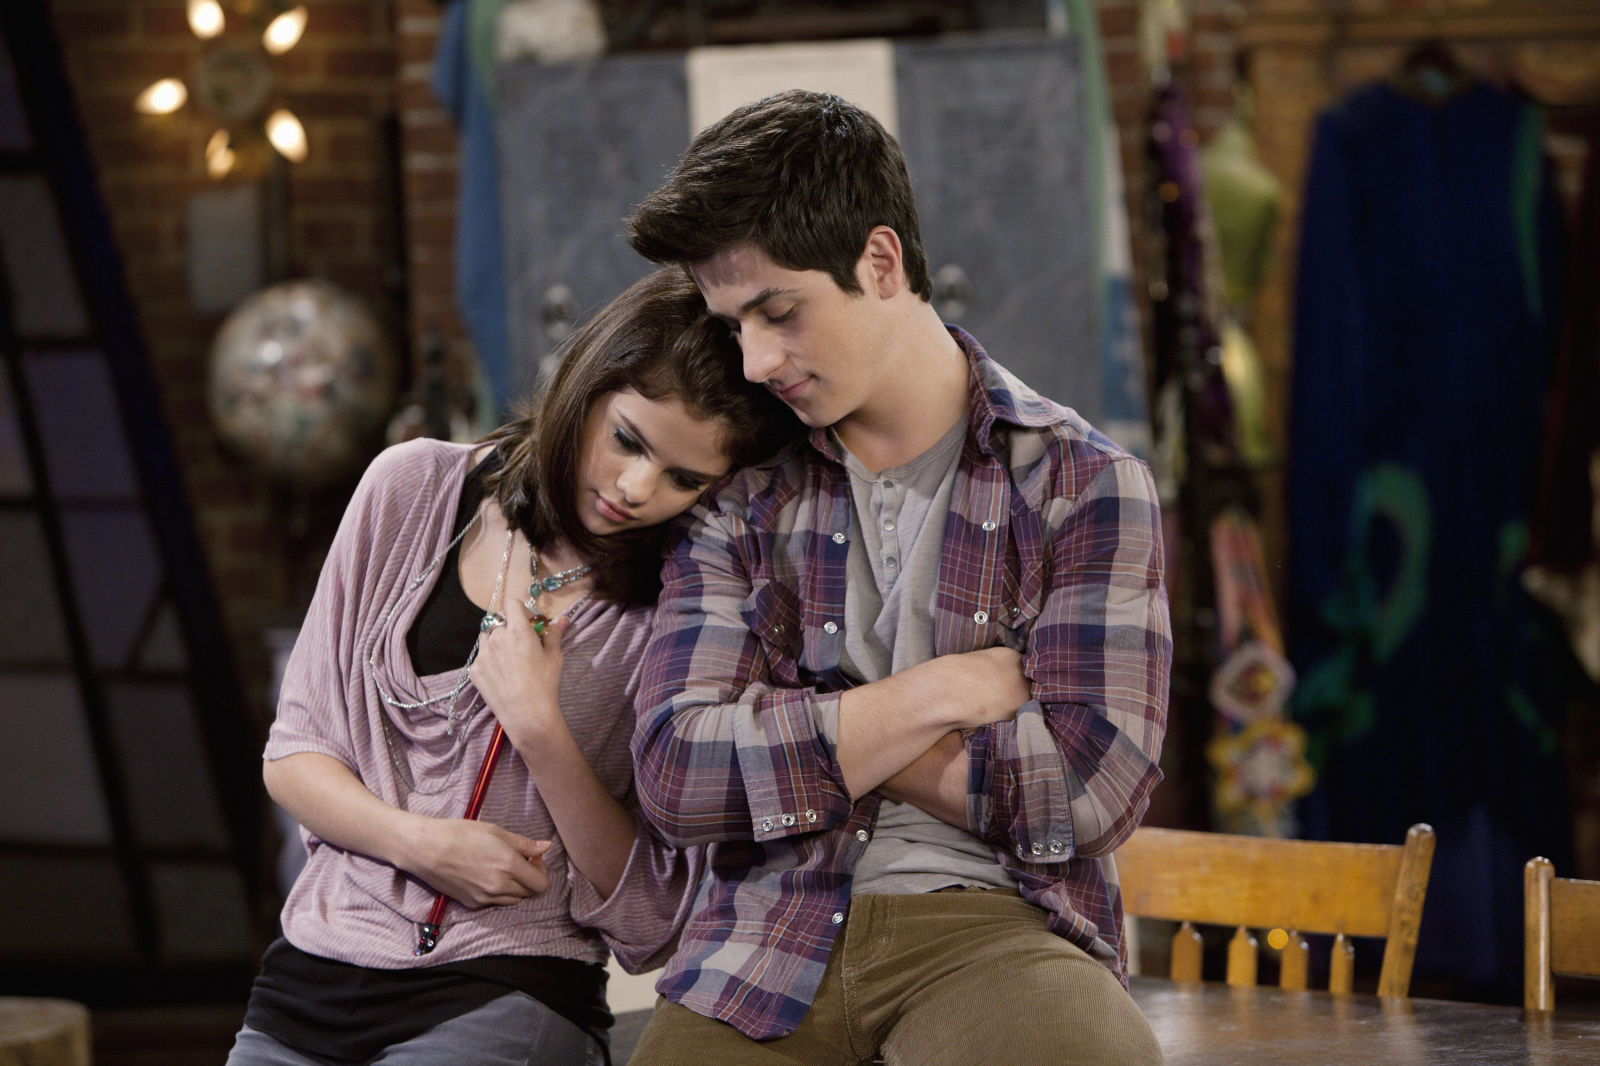 Wizards vs angels wizards of waverly place wiki